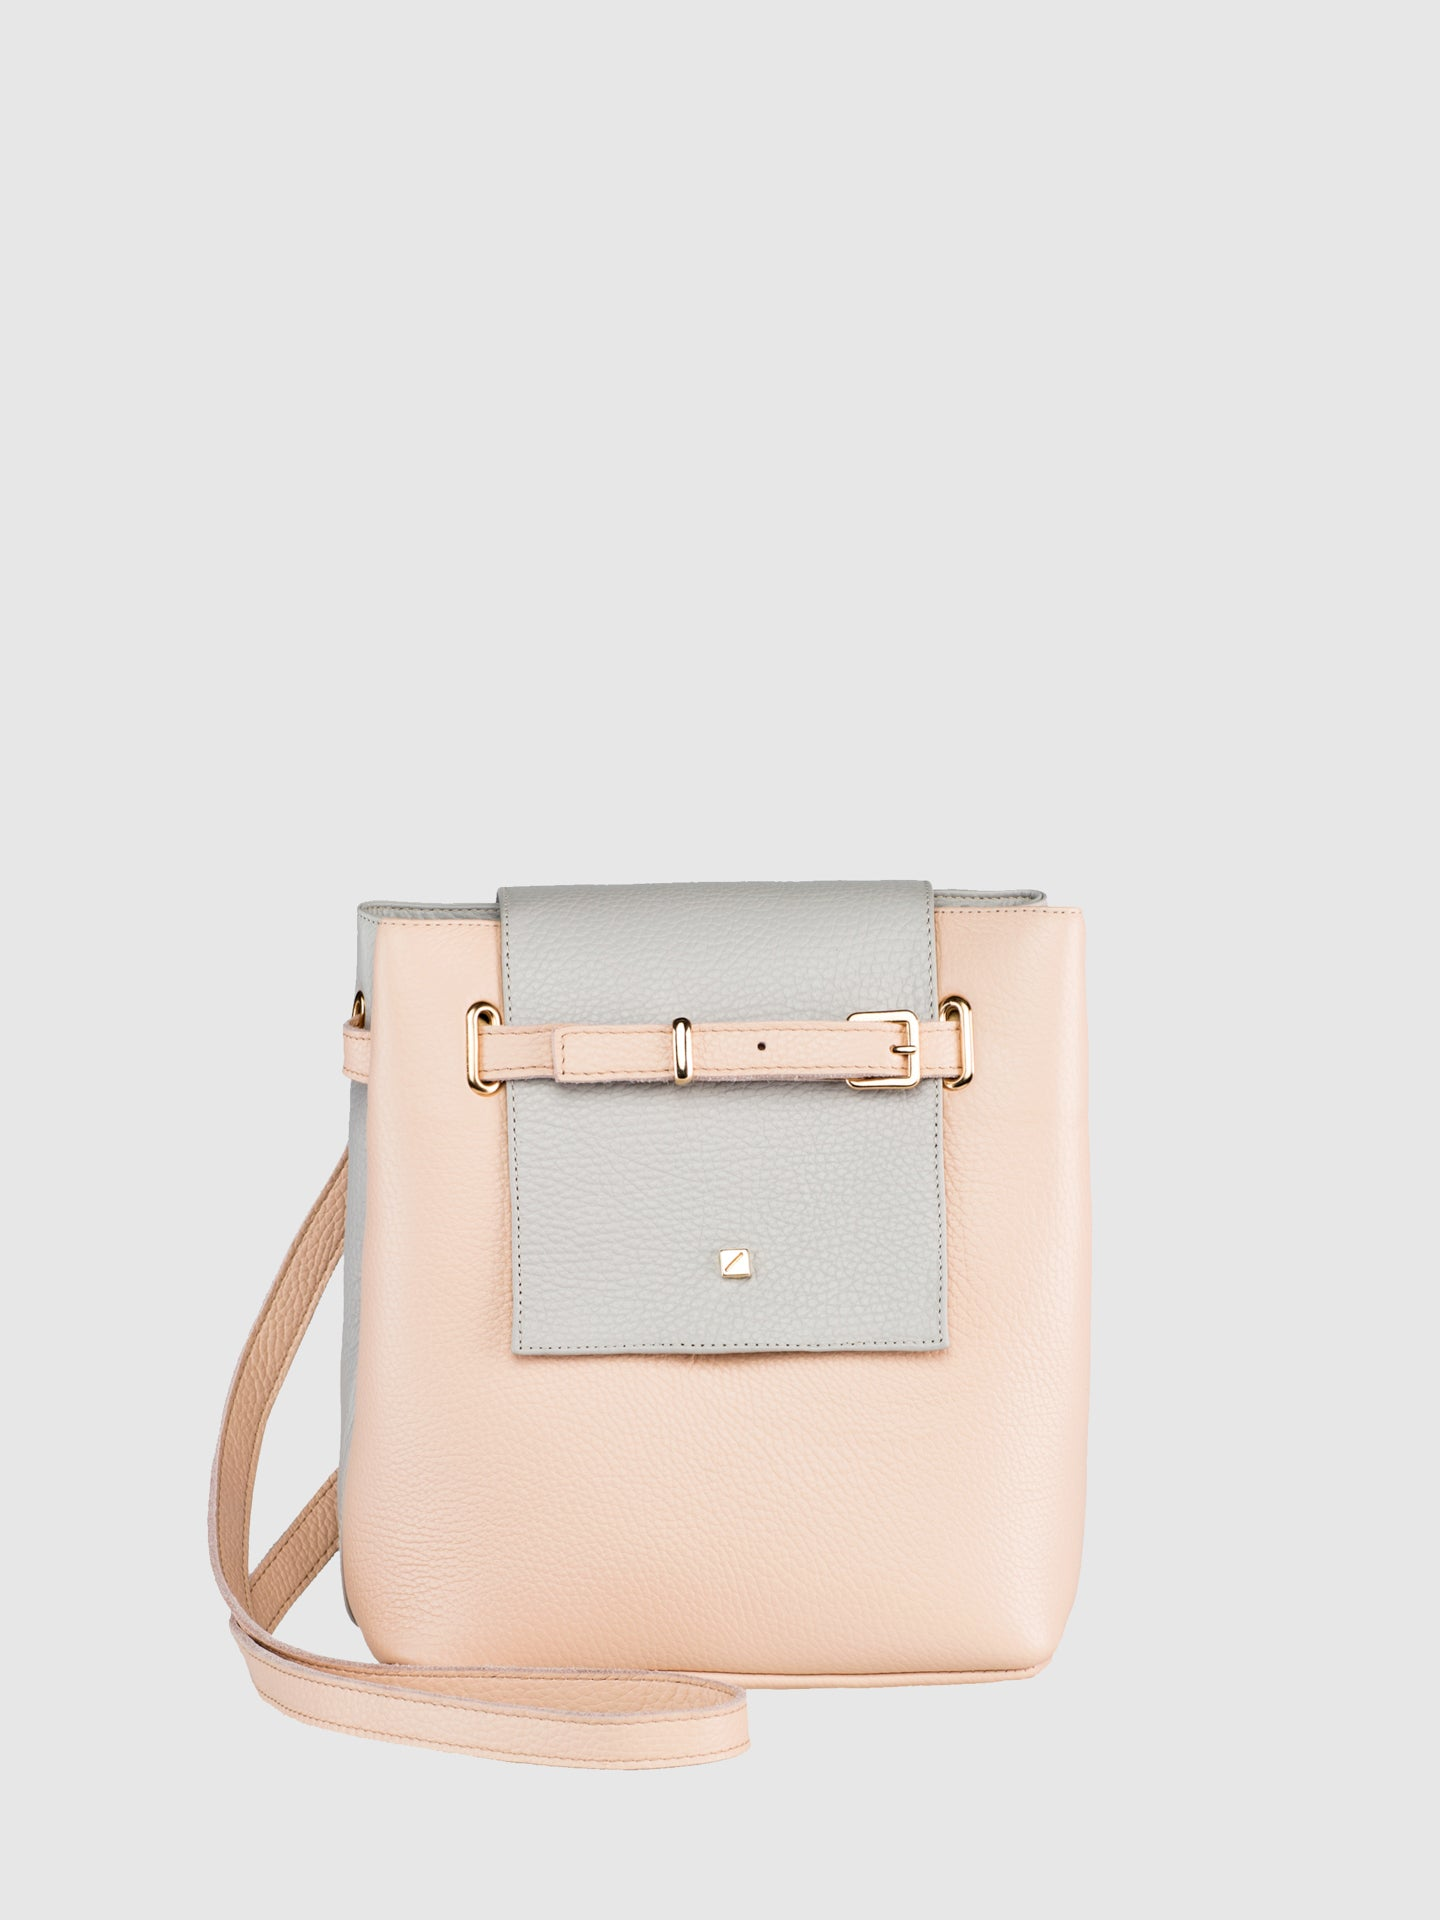 Maria Maleta Pale Pink and Gray Crossbody Bag